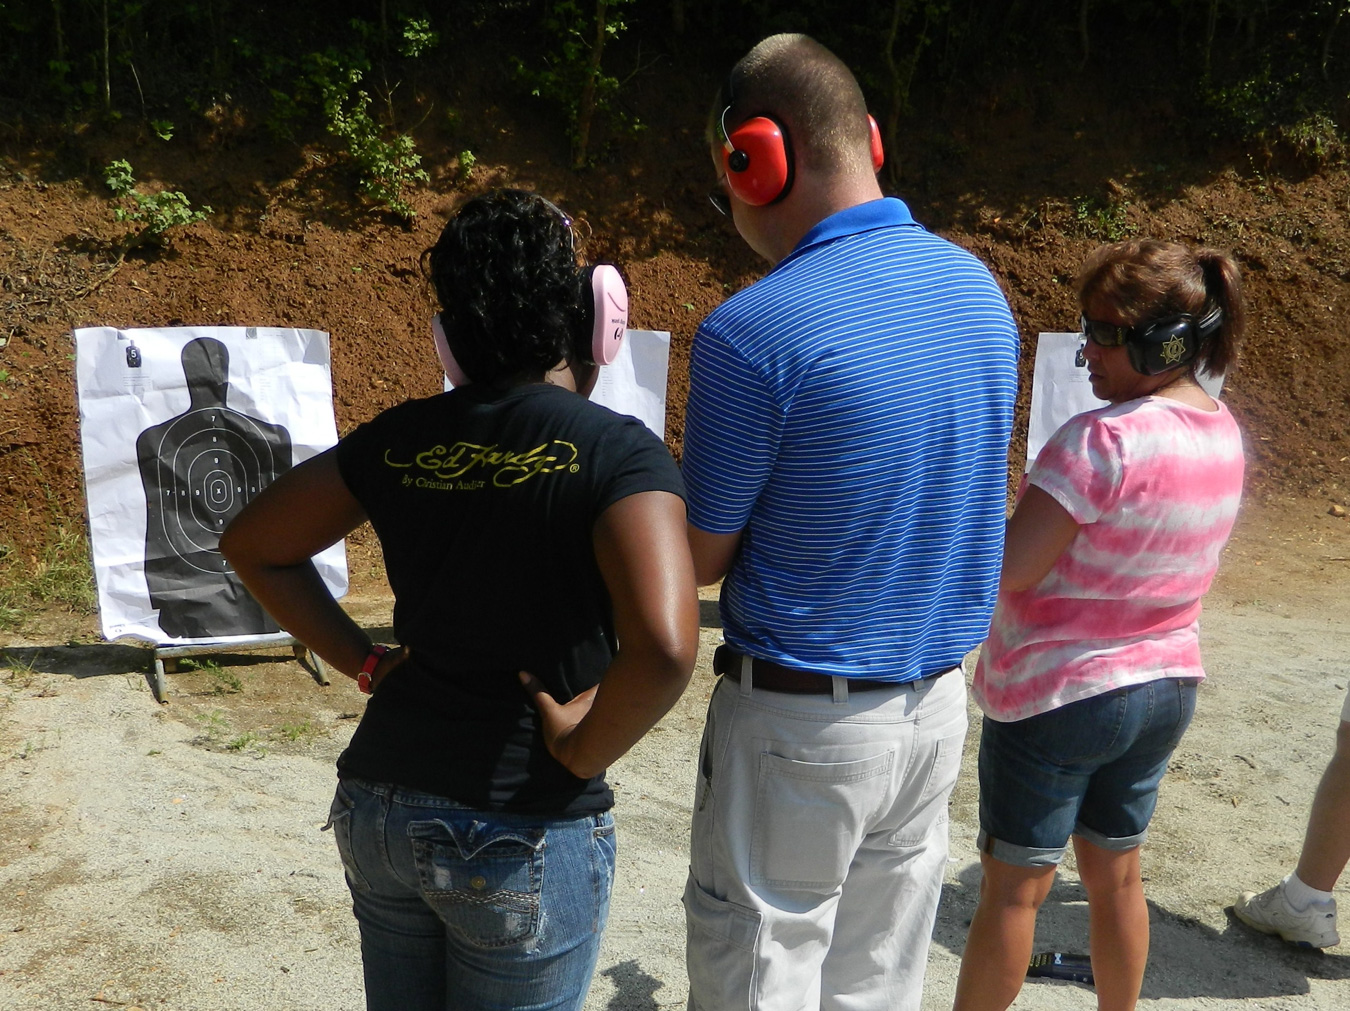 Handgun instruction at the shooting range